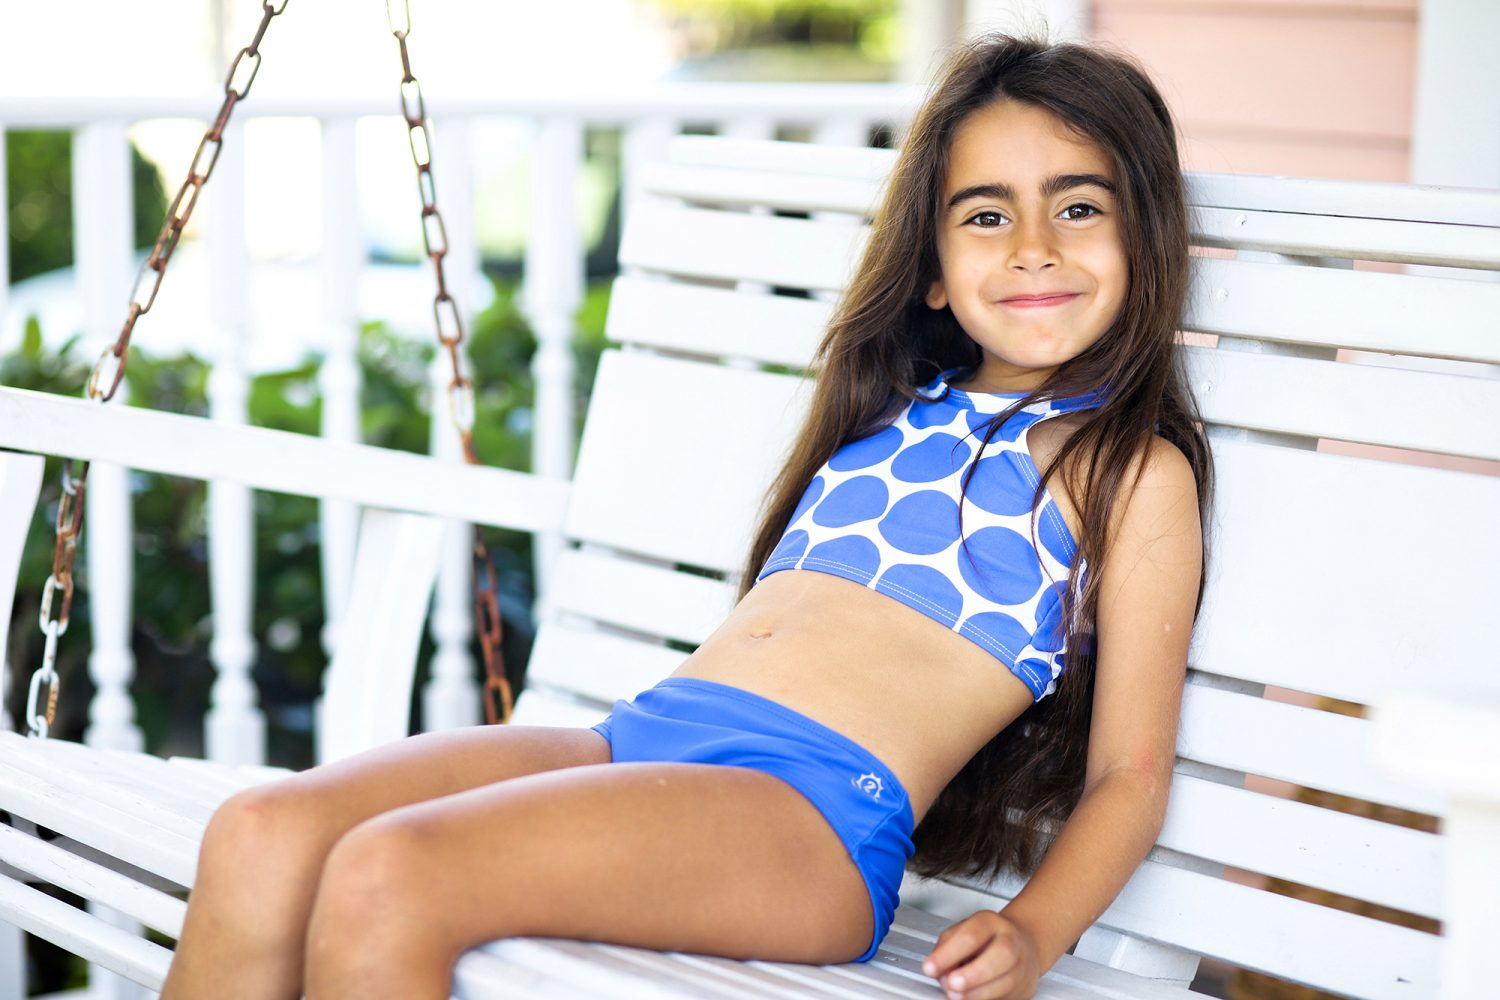 Beautiful girl wearing a swimsuit from SwimZip on a porch swing